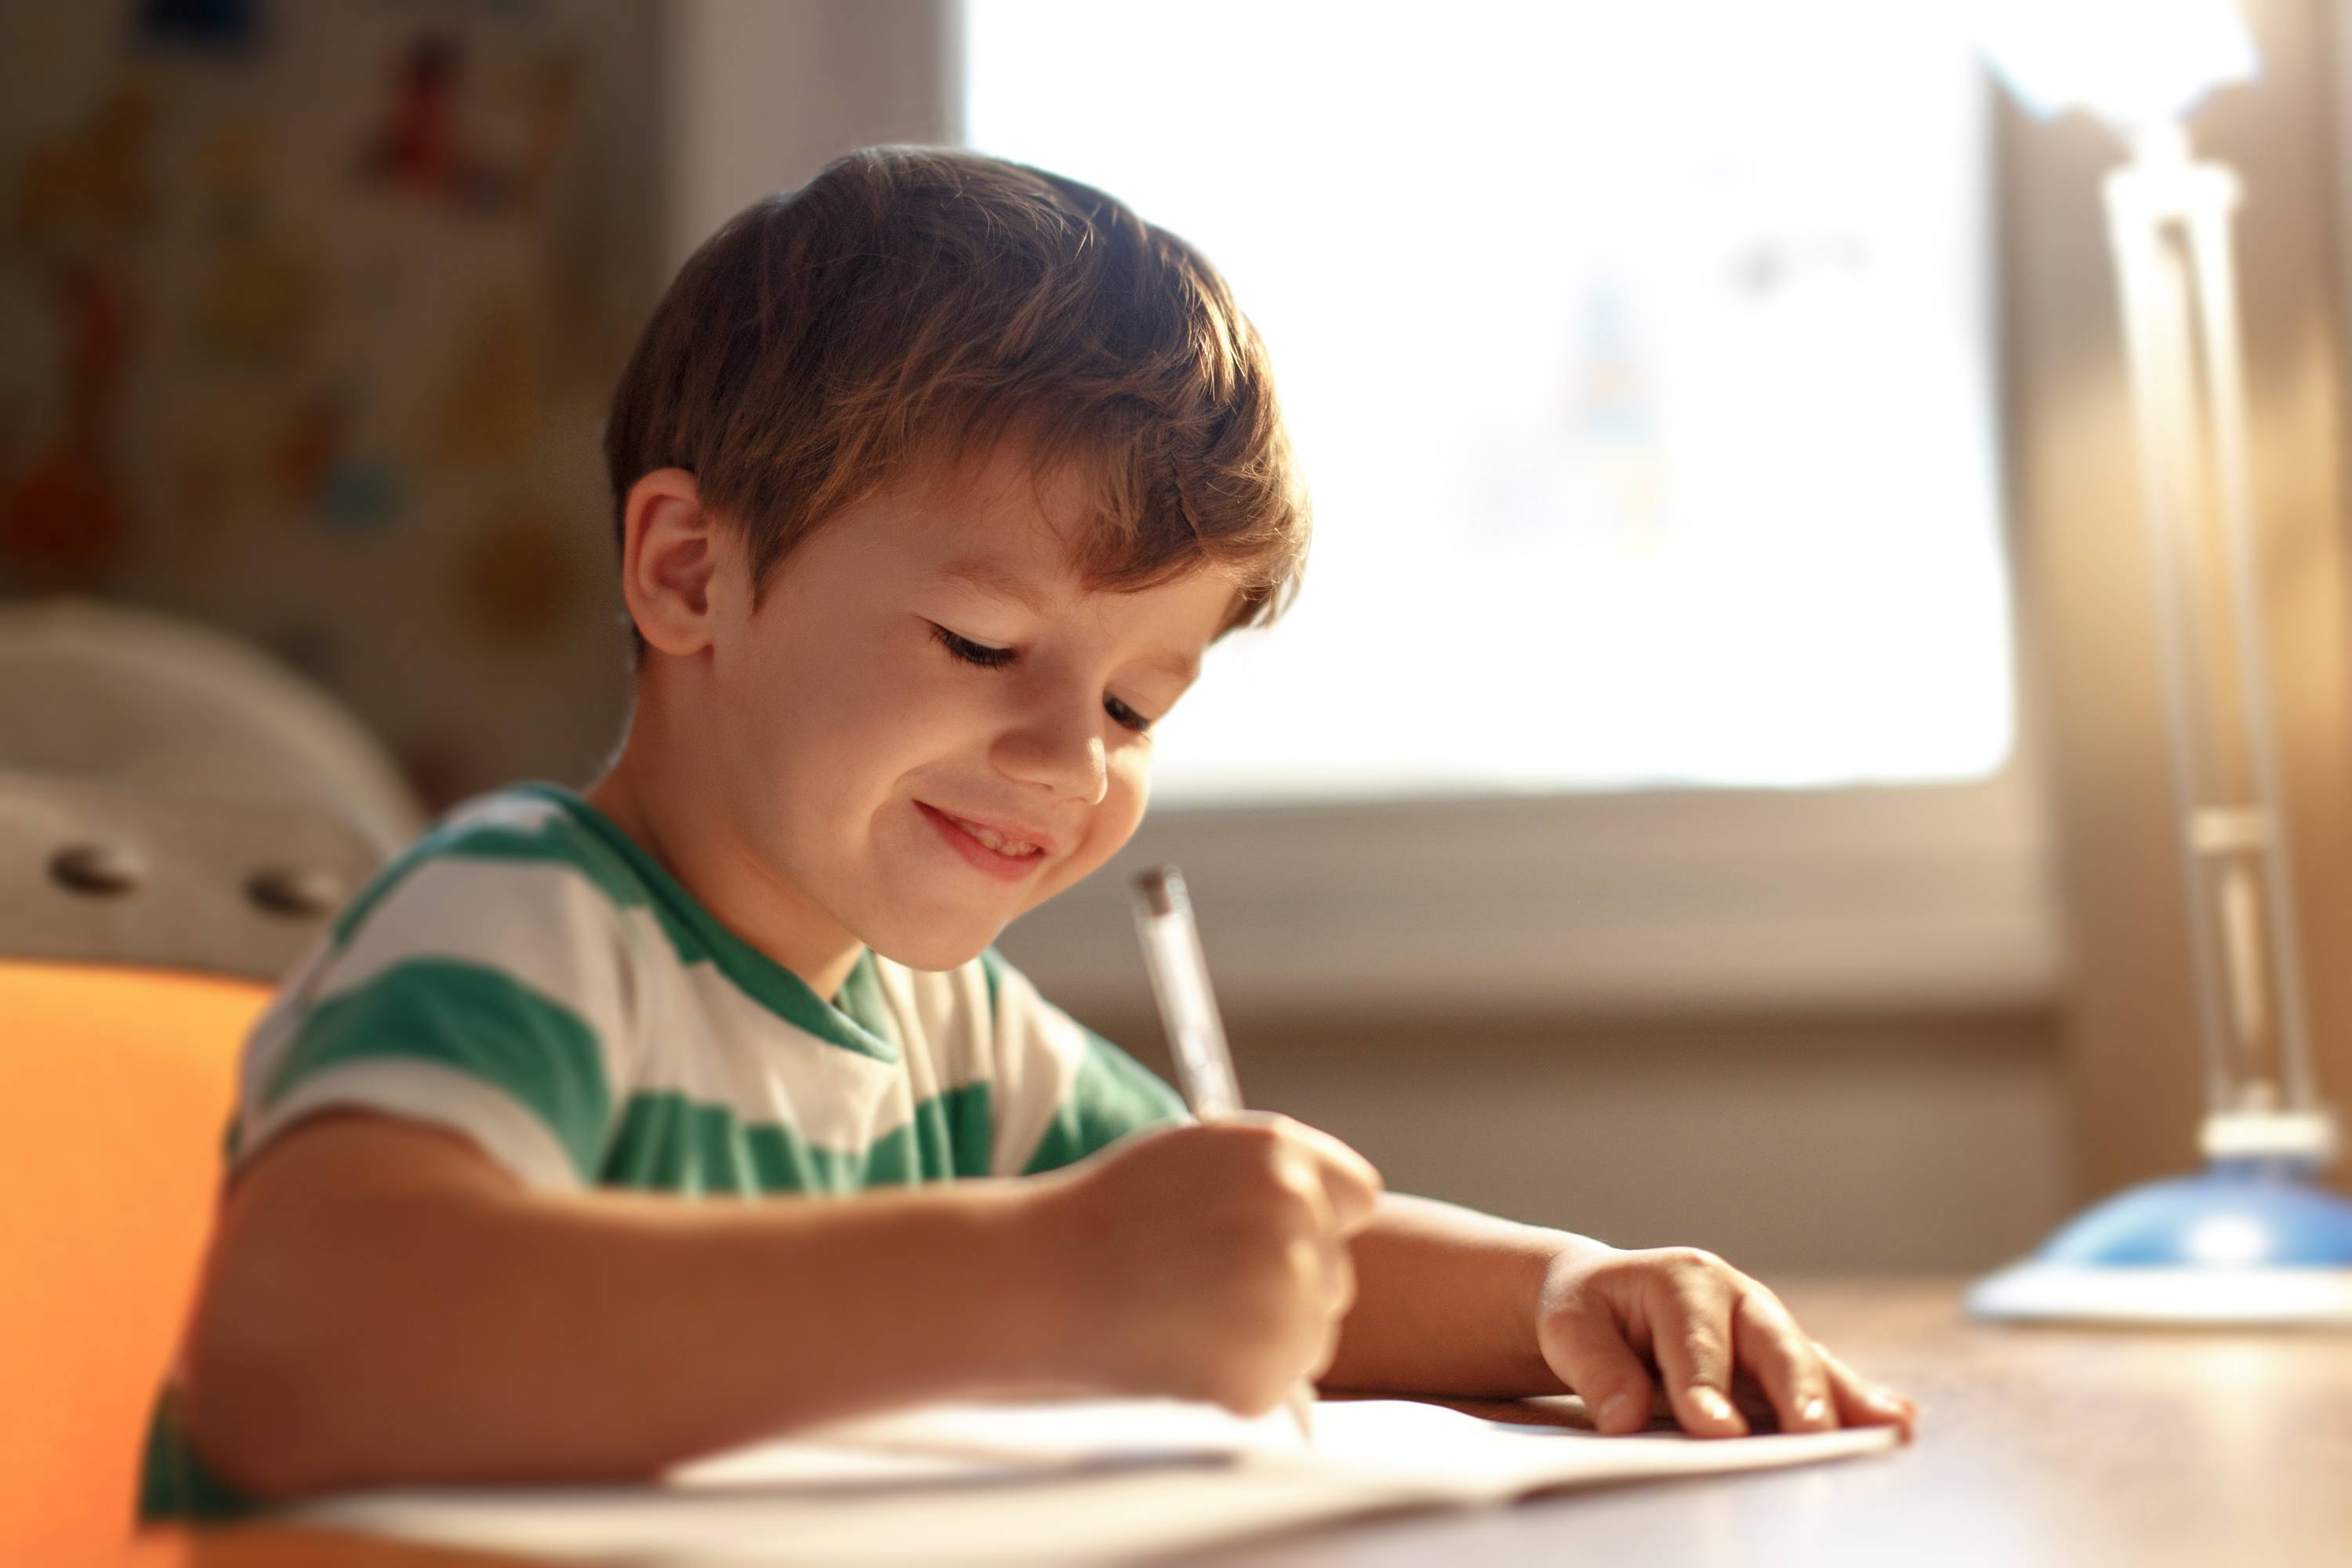 1_7_-_Four_Tips_to_Improve_Your_Child_s_Writing